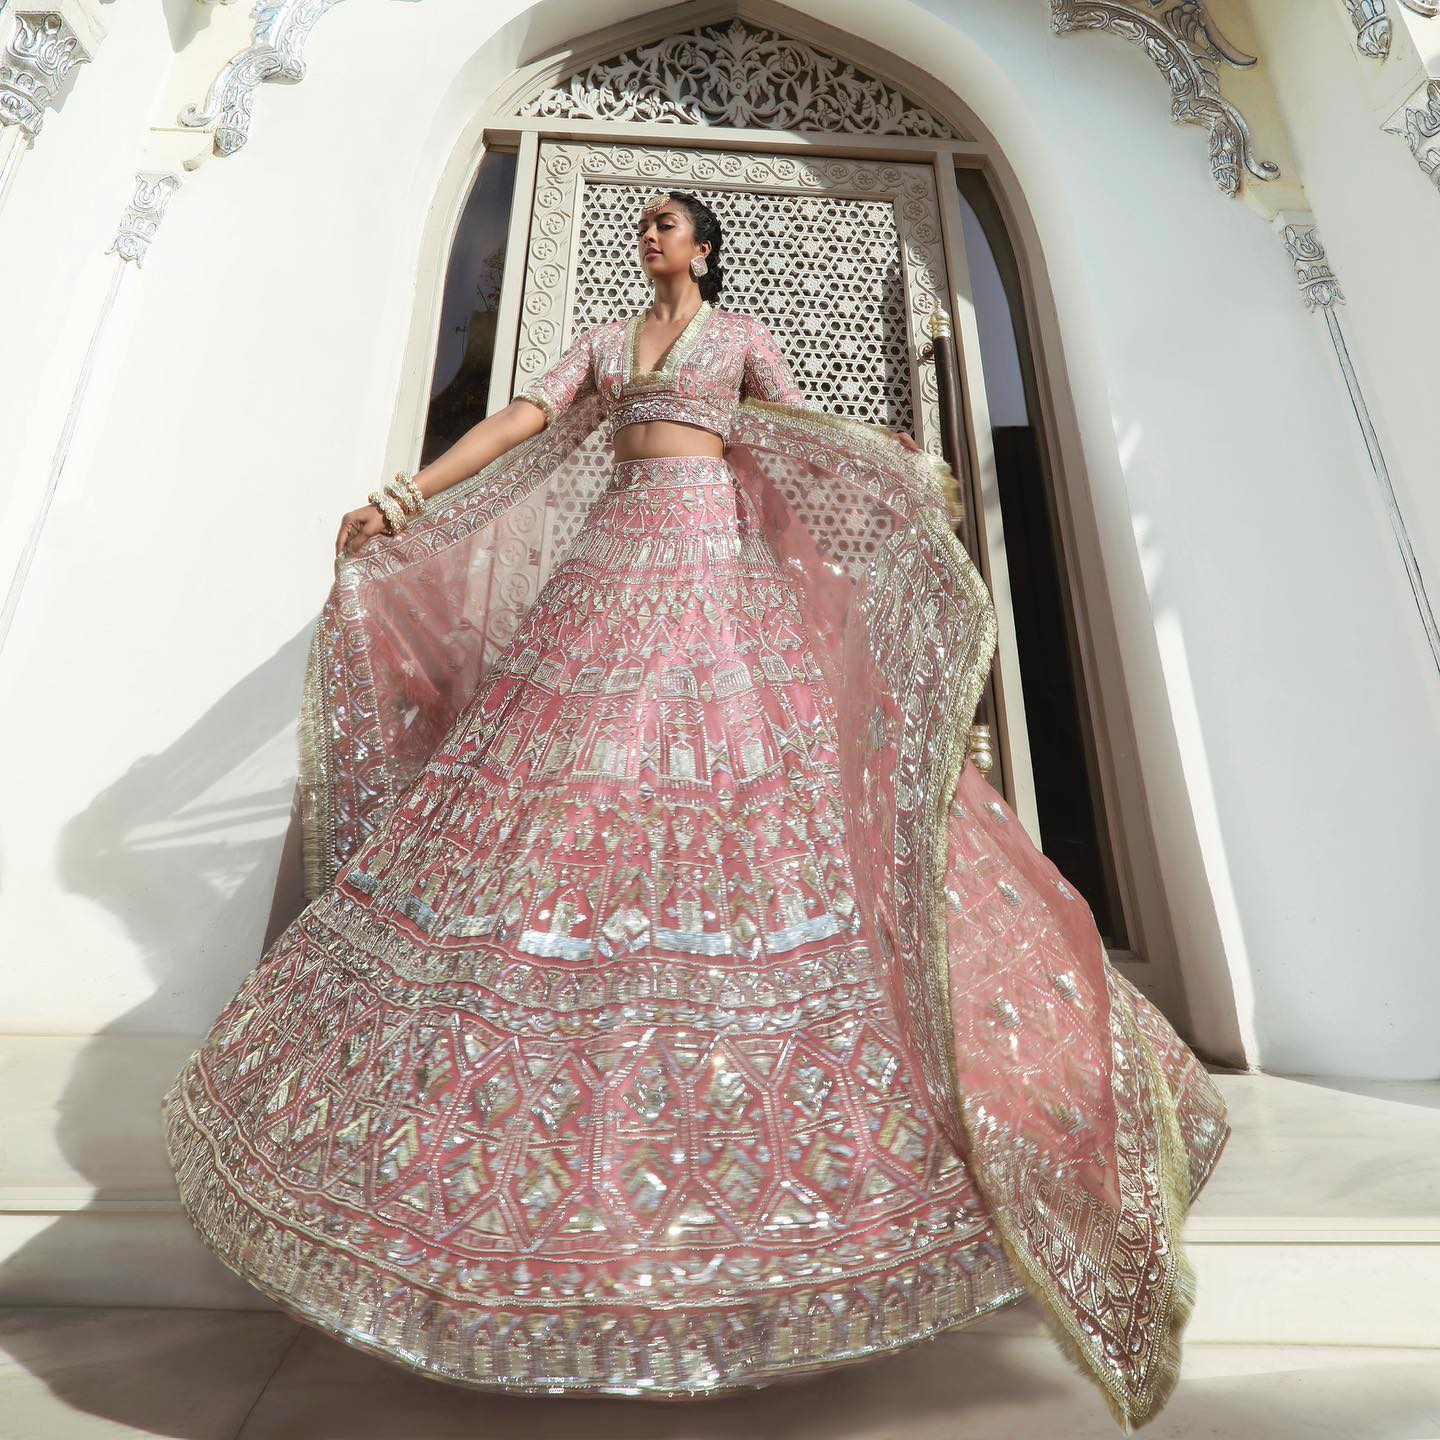 Manish Malhotra bridal lehenga !!! Unfolding perfection and joyful #Nooraniyat emotions in the swirling old rose paradise  Voluminous Lehenga and the signature Noor Bodice embellished in gleaming sequins and metallic fringes is a marvelous culmination of months of diligent artistry. 2021-06-17